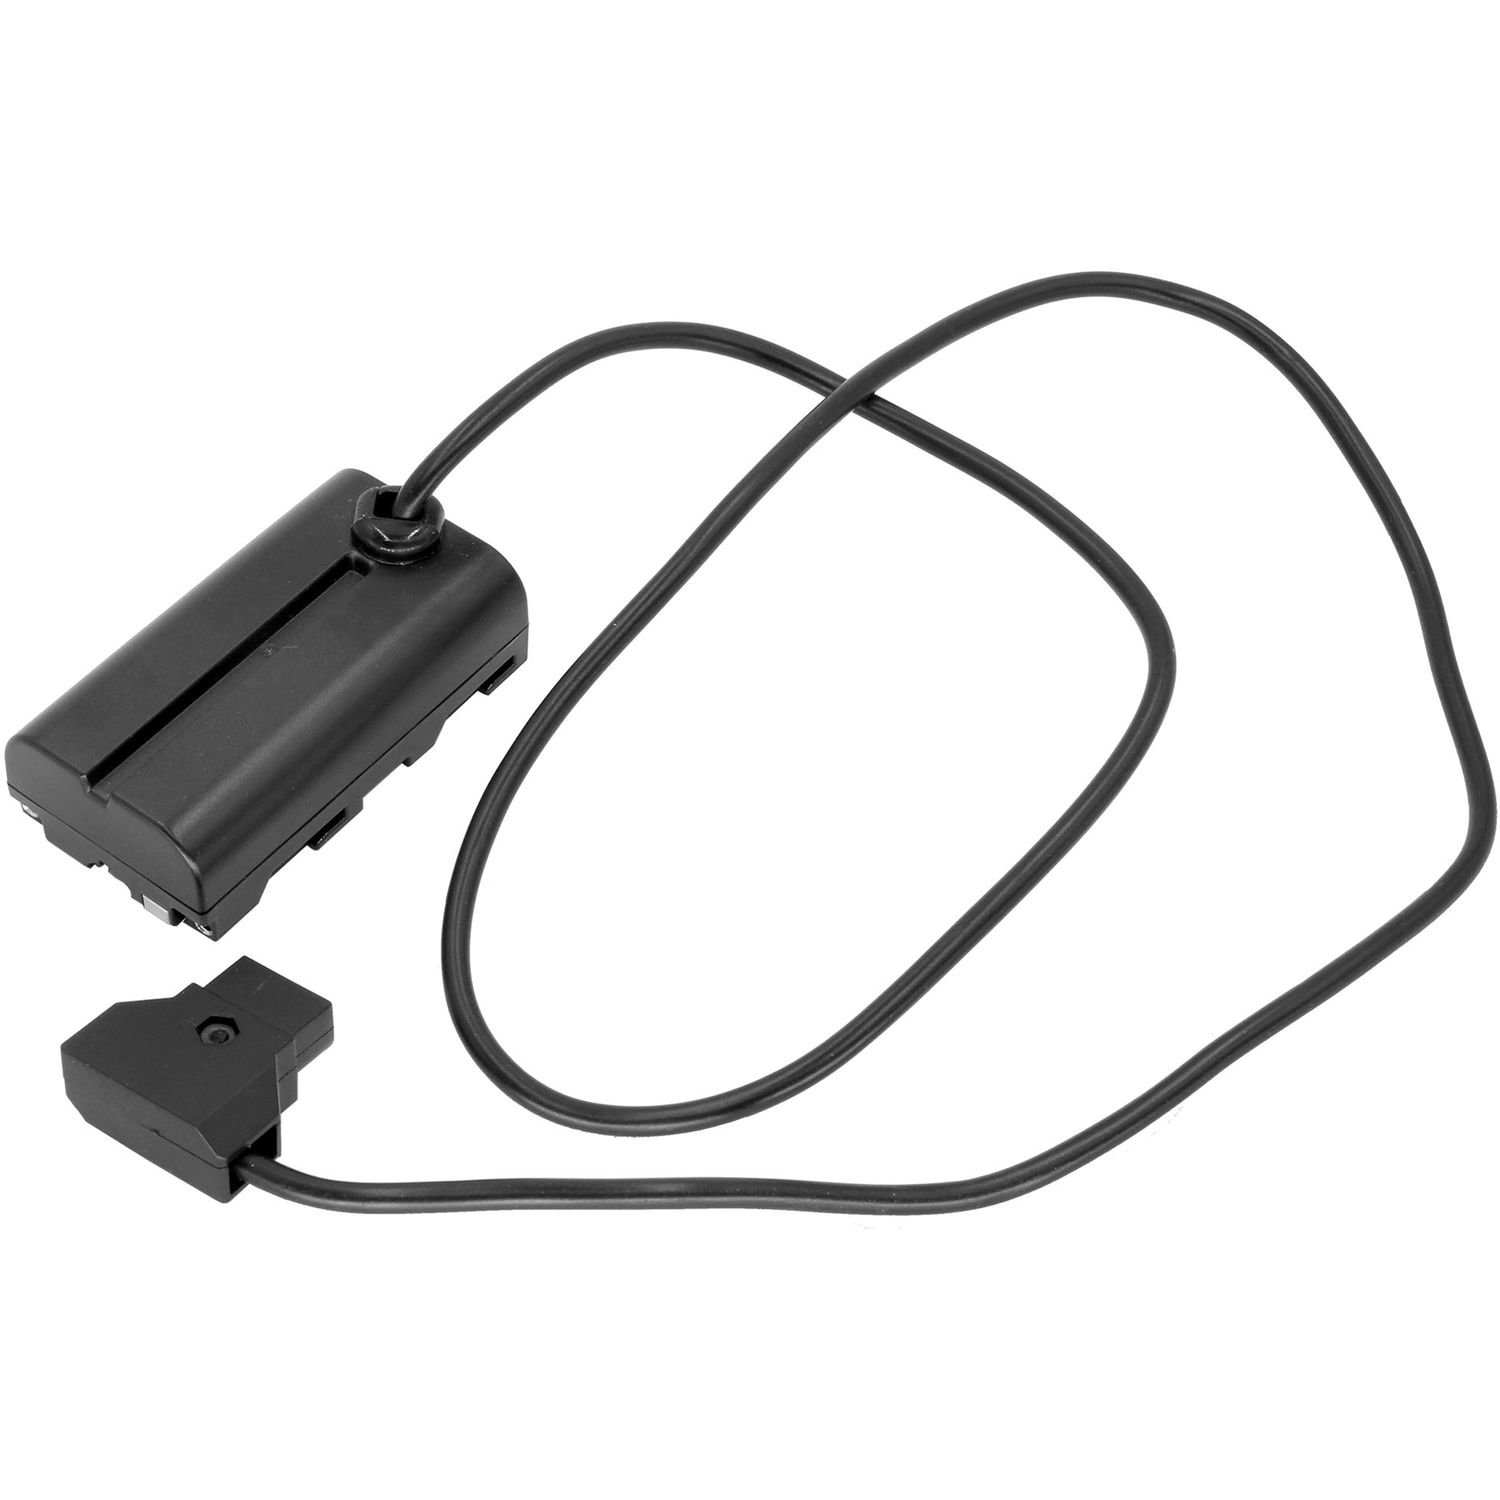 EP-5B D7100 D600 D7000 D800E GyroVu D-TAP to Nikon EN-EL15 Dummy Battery 30/' Streight Intelligent Adapter Cable Compatible with Nikon 520 P530 D610 D800 D810 D800A D750 1V1 Cameras